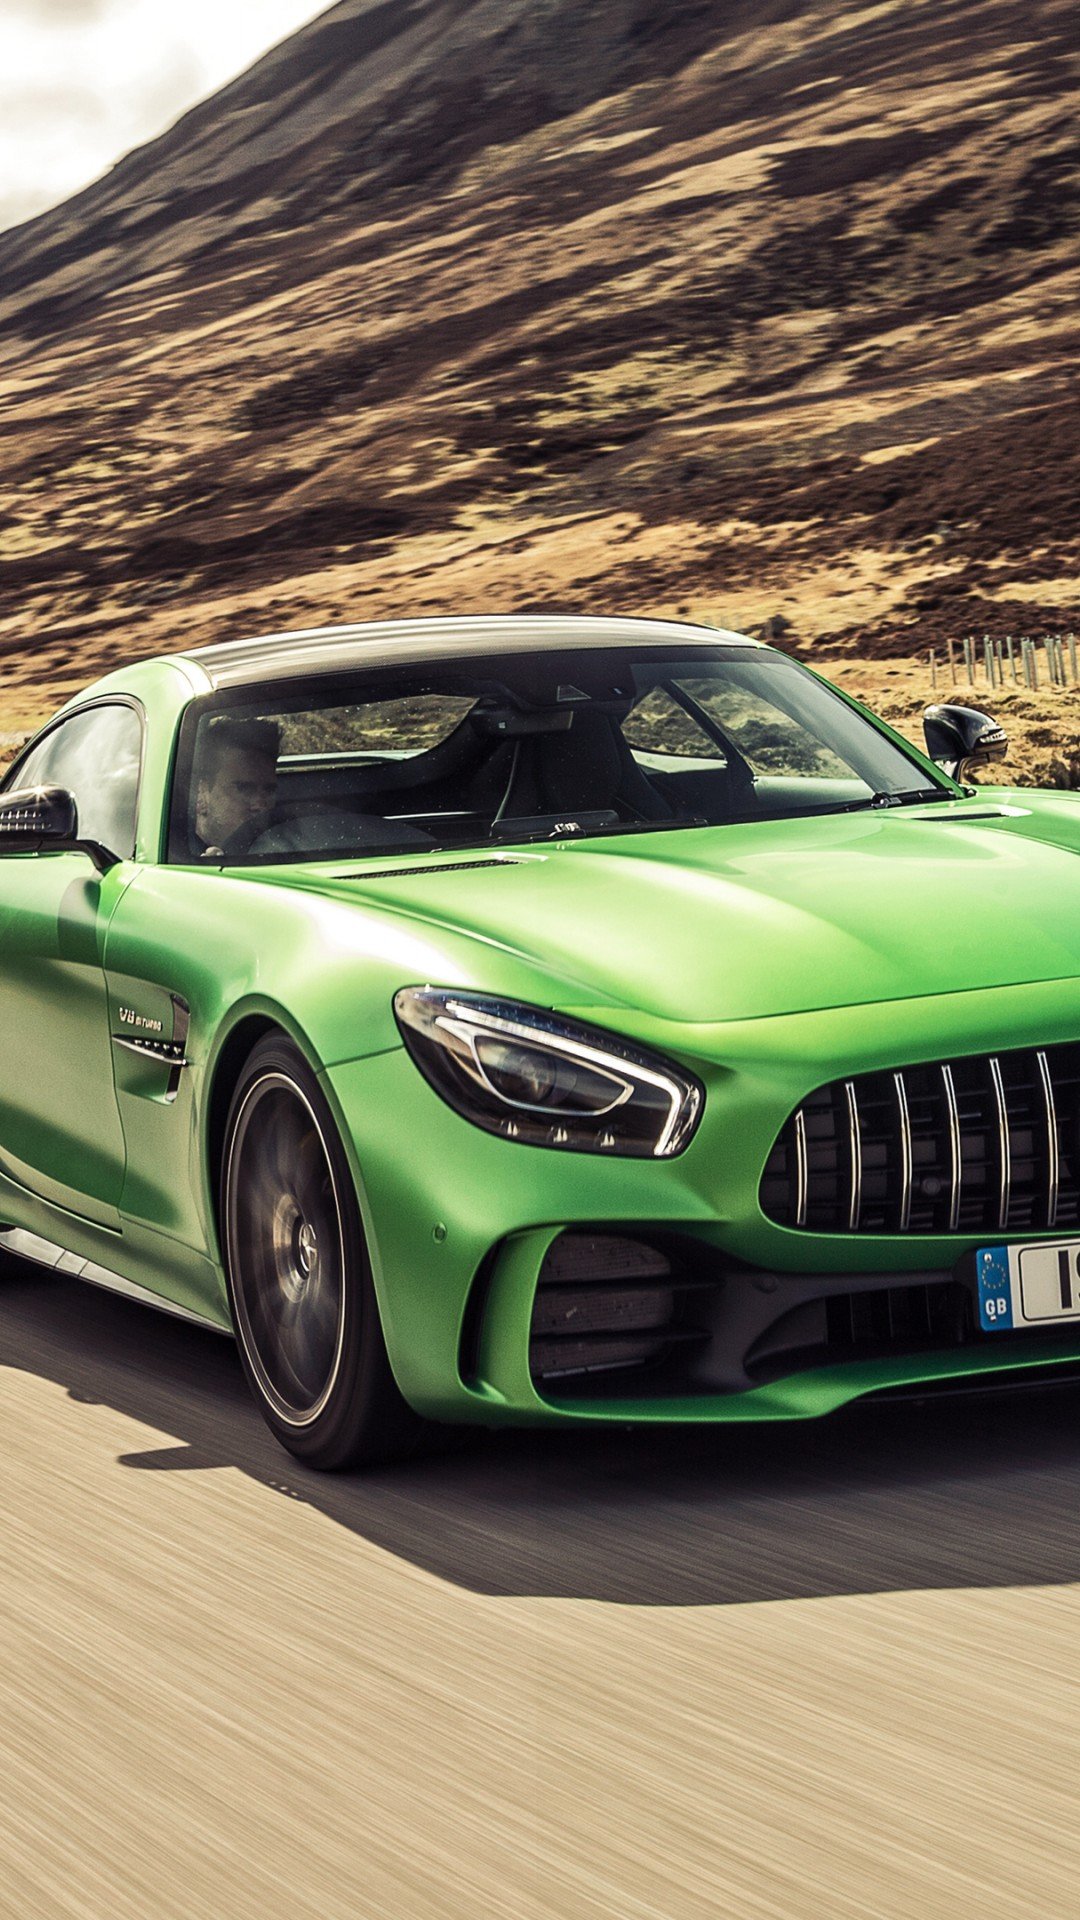 Get Iphone 6 Mercedes Benz Wallpapers For Mobile Images ...